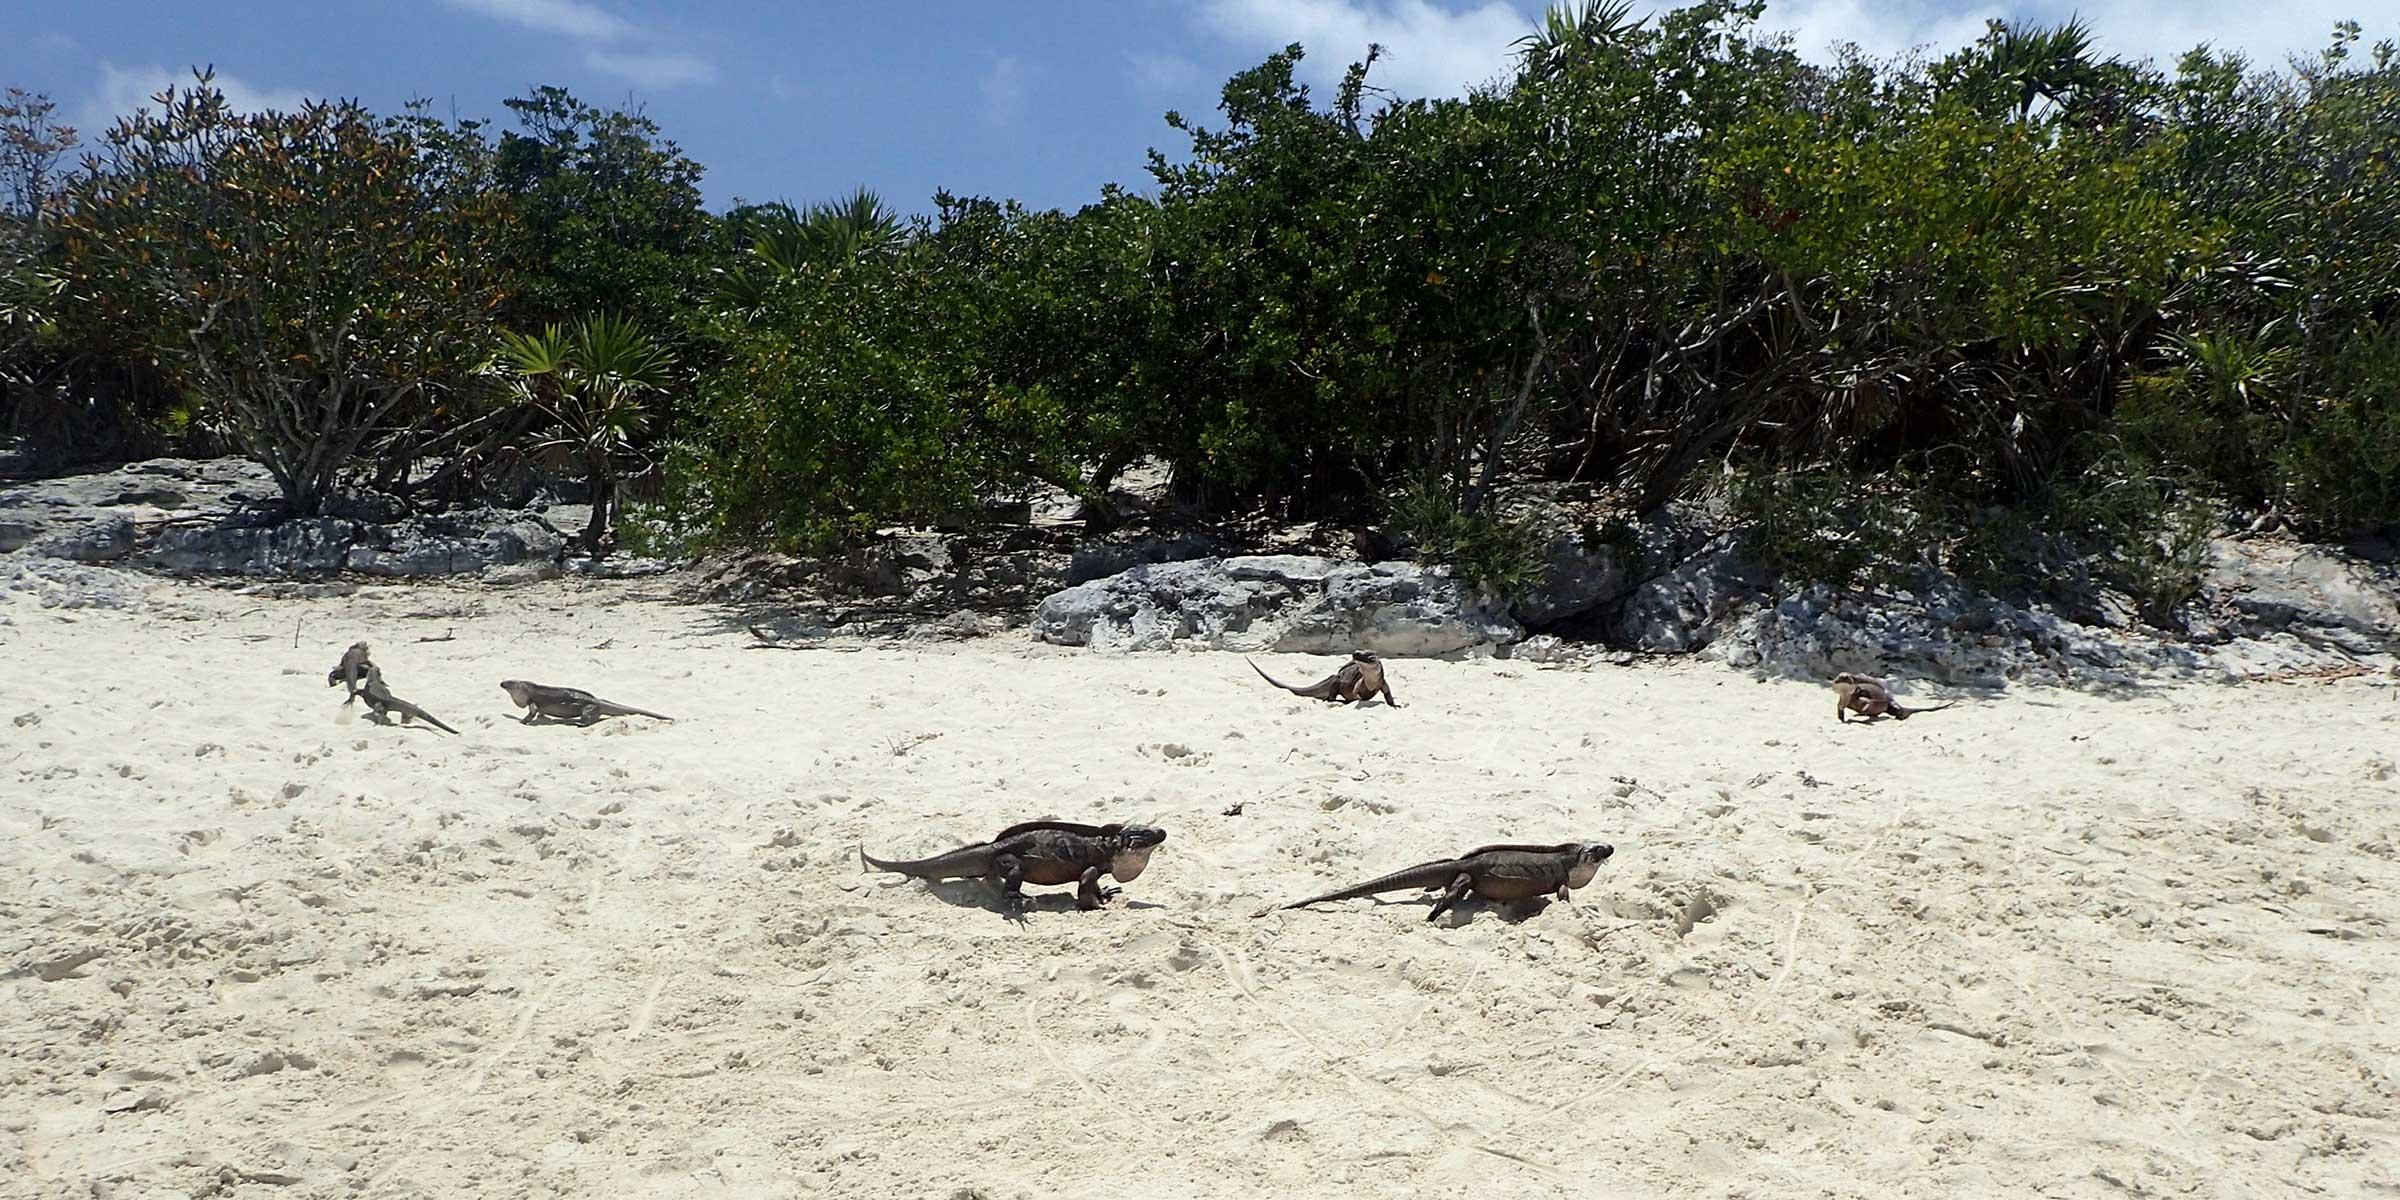 Iguanas on Allan's Cay in the Exumas